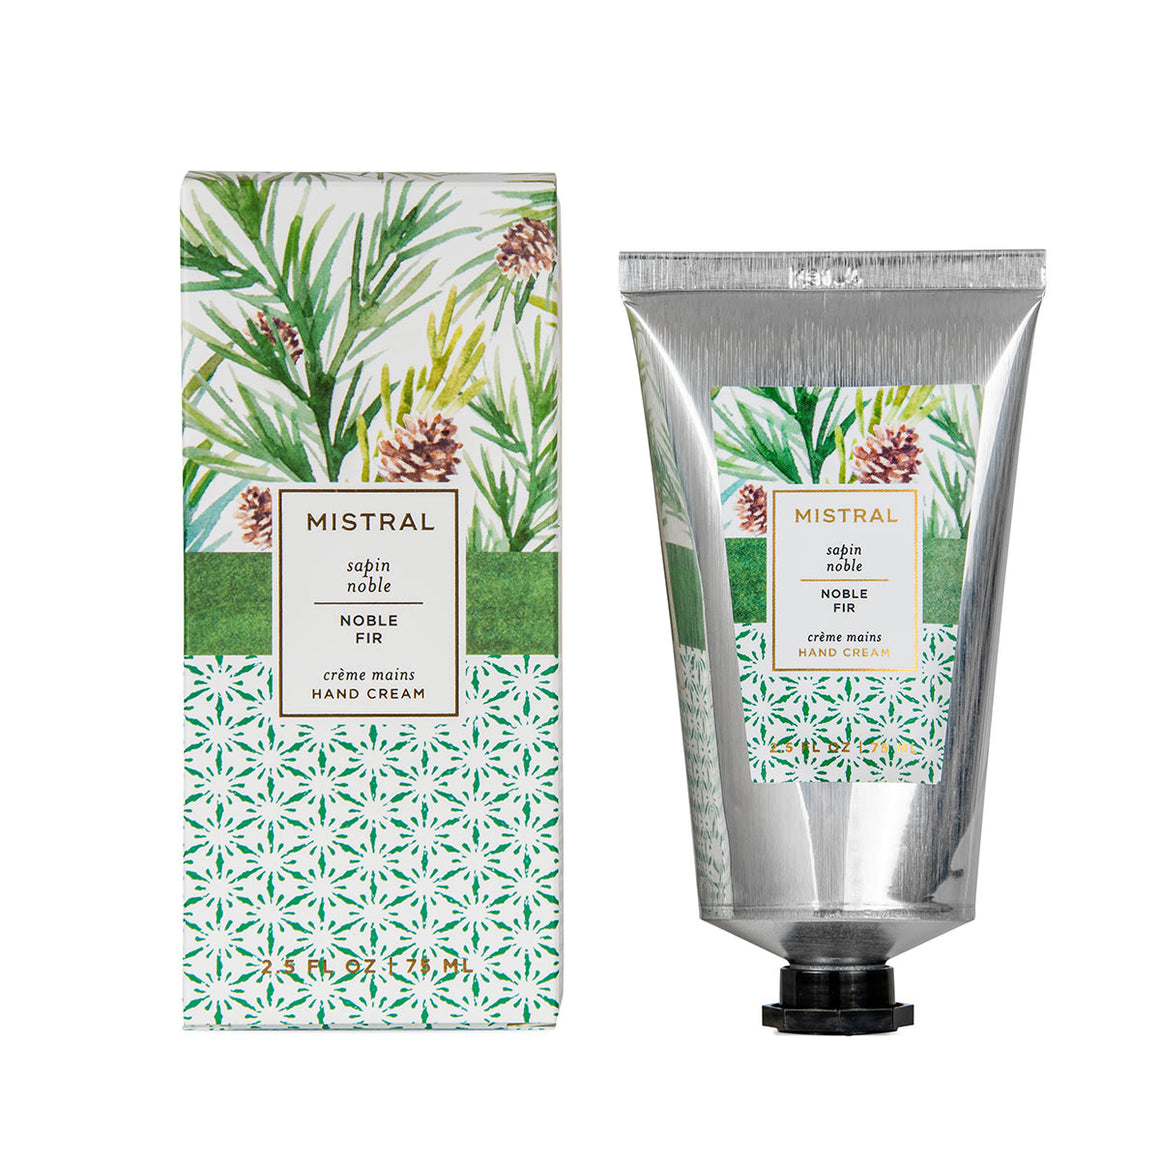 Noble Fir Papiers Fantaisie Hand Cream